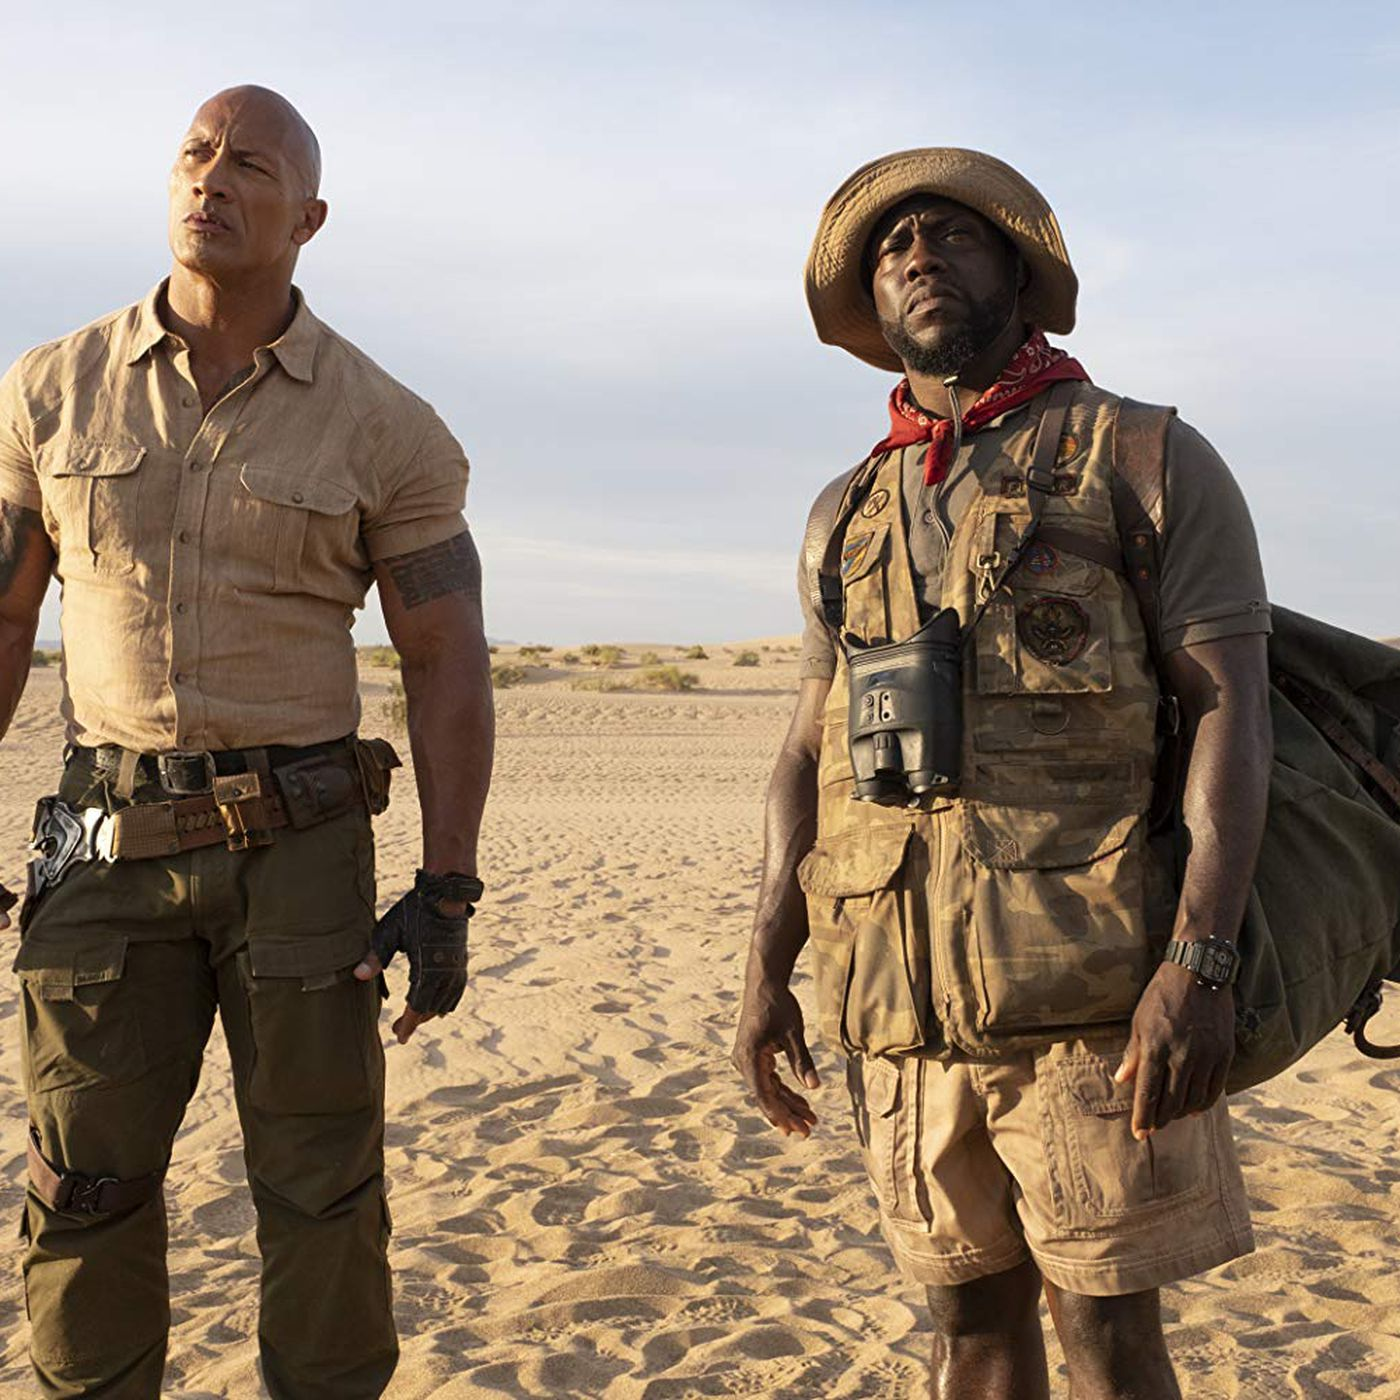 Jumanji The Next Level Review A Pretty Good Body Swap Comedy The Verge